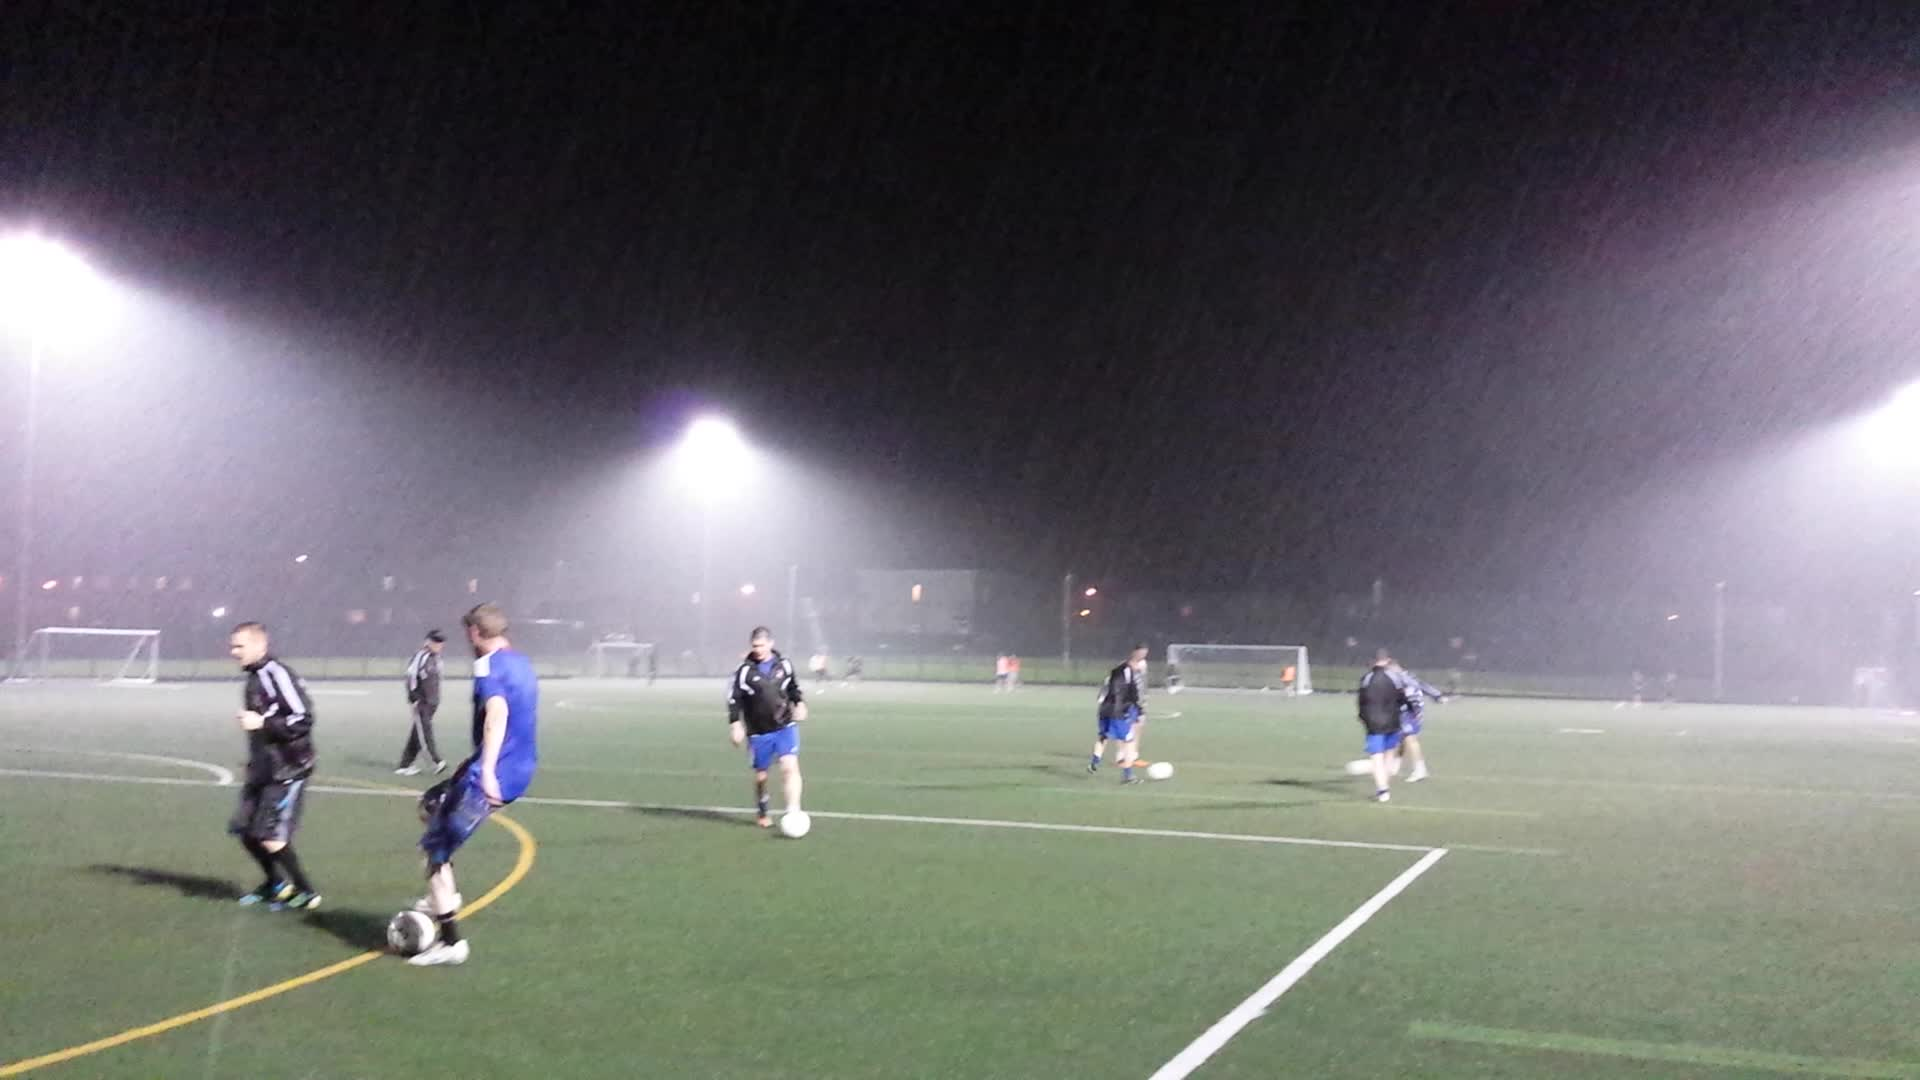 Training in torrential rain 3rd October 2013